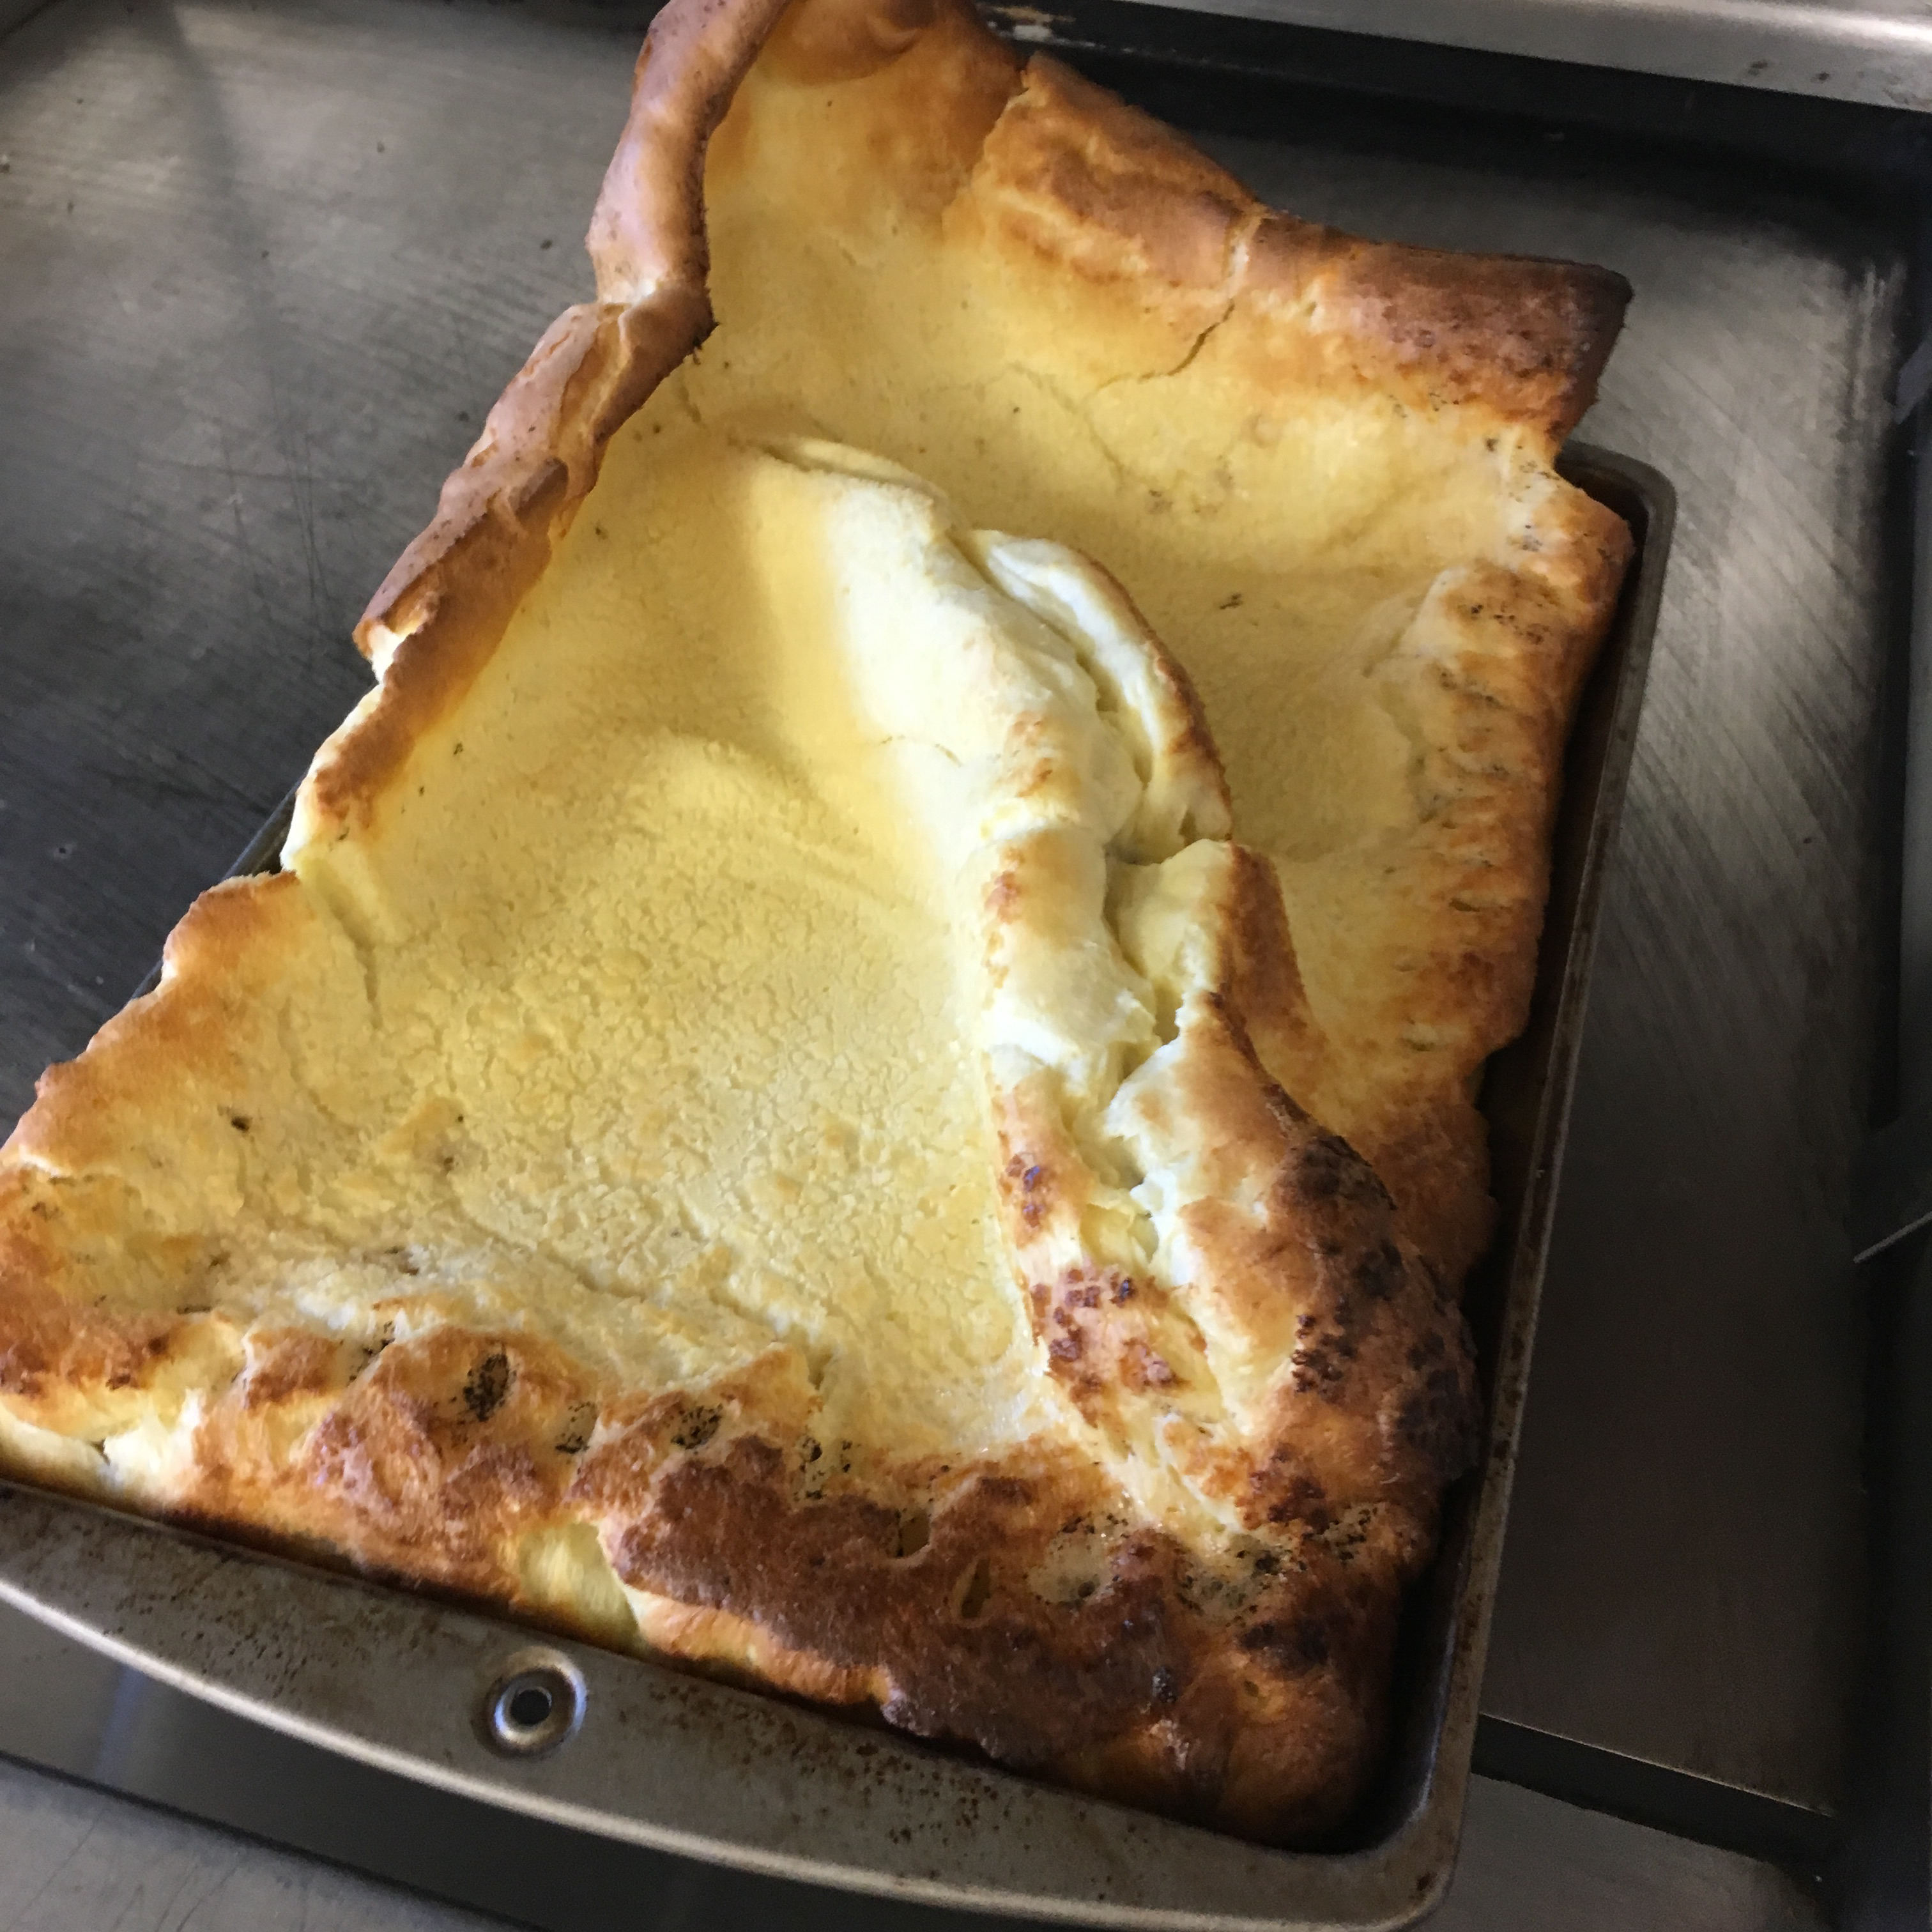 German Pancake with Buttermilk Sauce LilacShadow1584